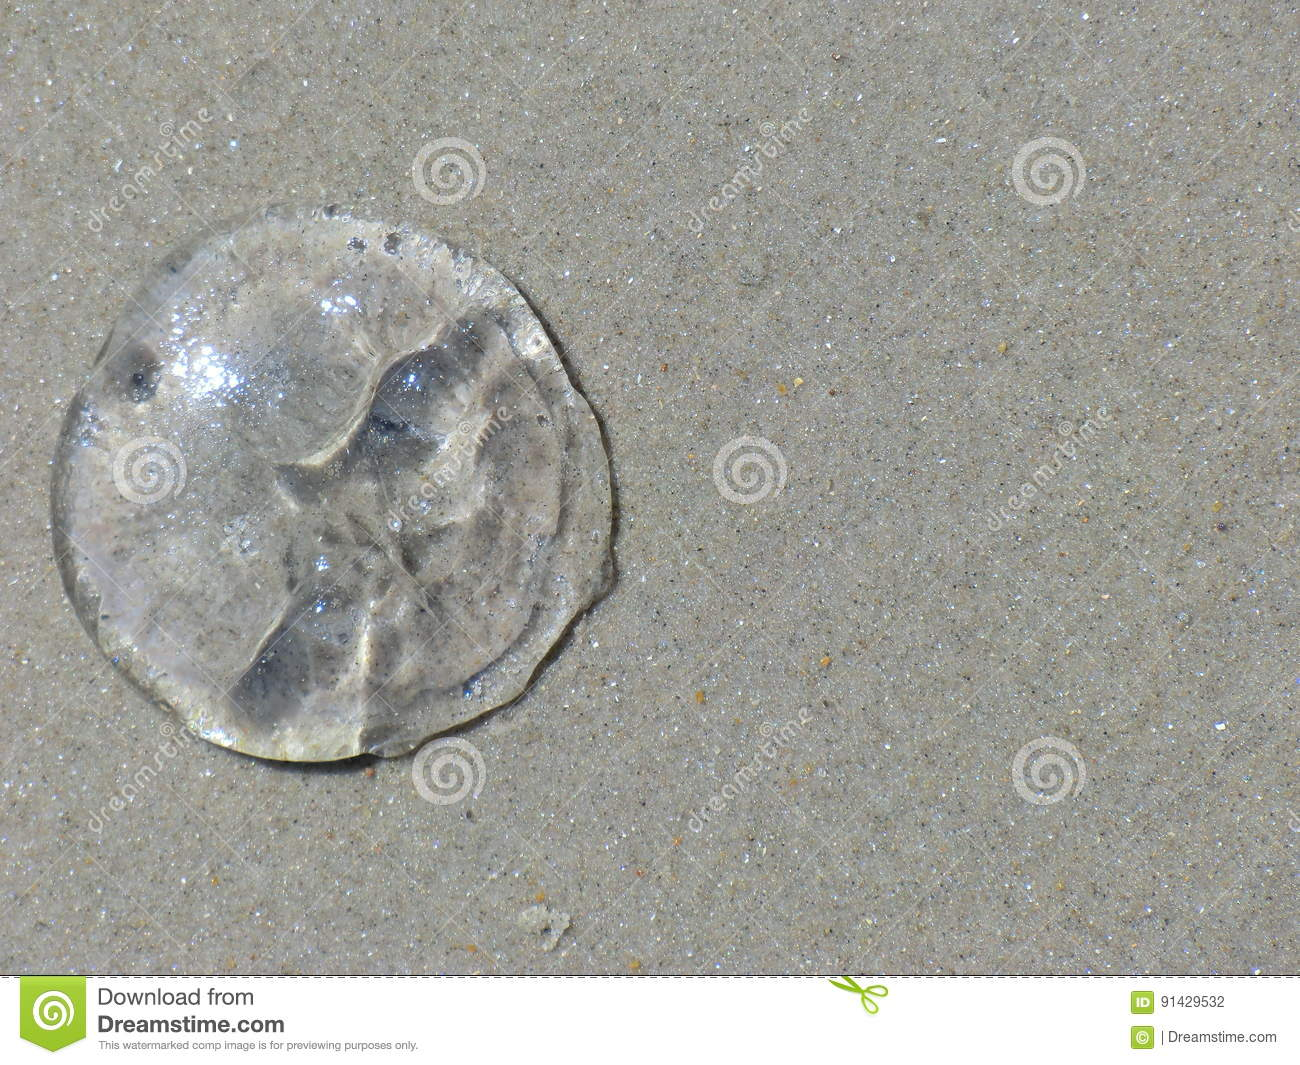 Jelly fish on sand.